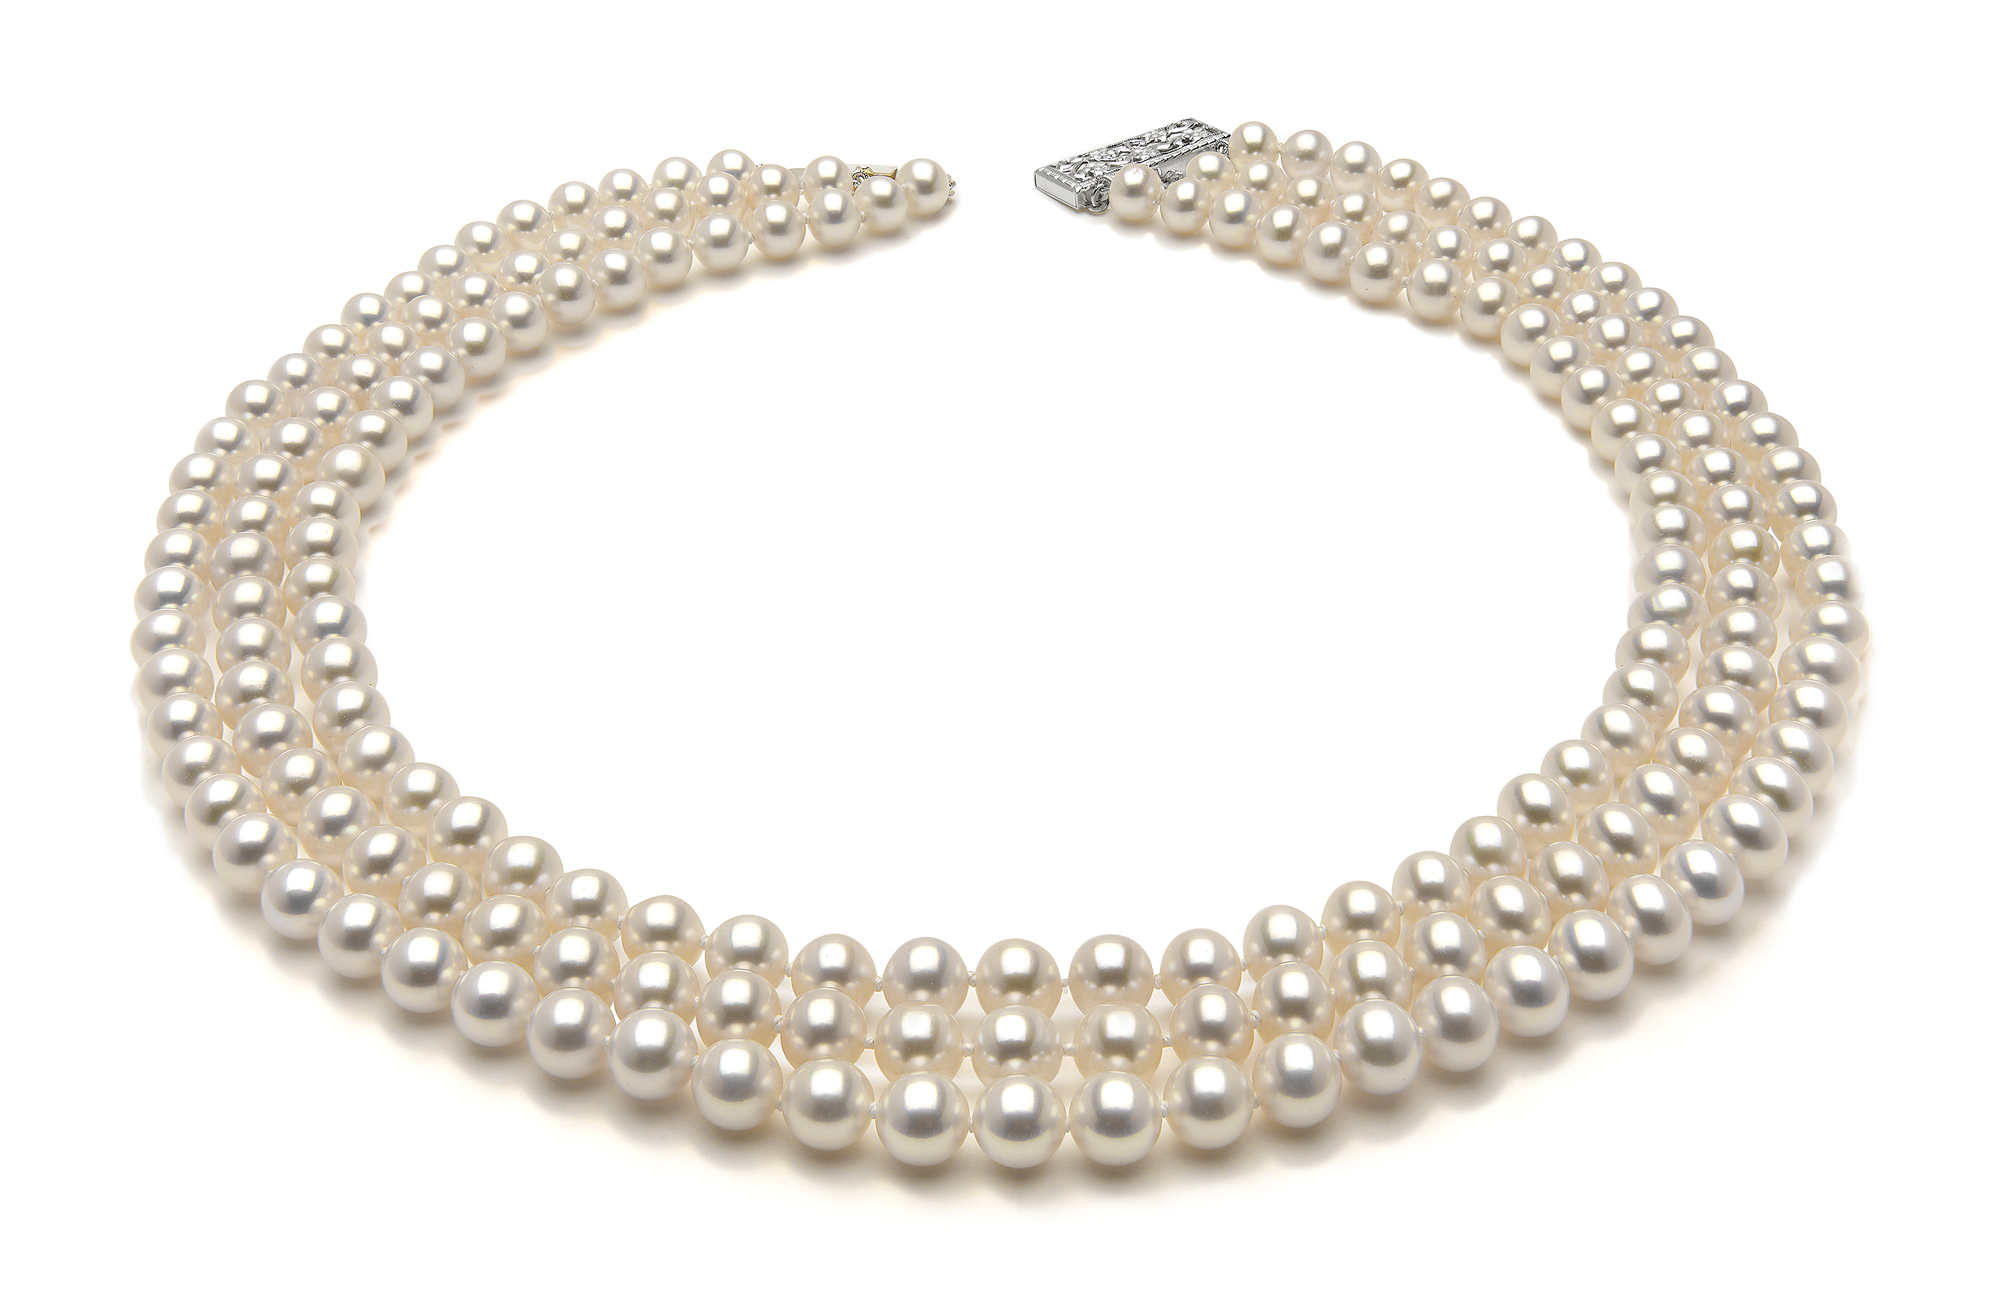 6eaf600aebe1a 6.5 x 7mm White Freshwater Triple Strand Pearl Necklace